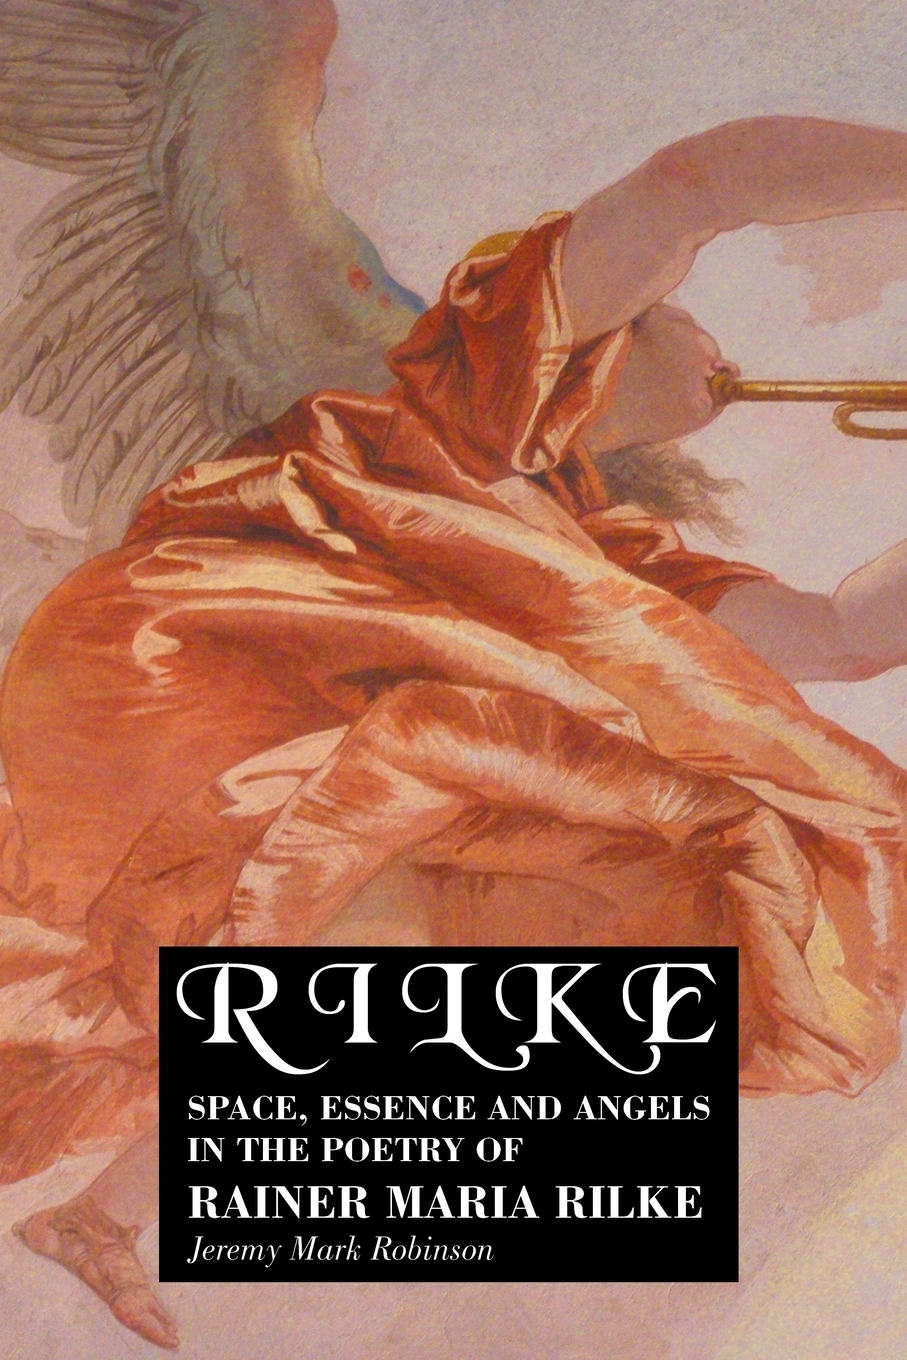 Jeremy Robinson. RILKE. SPACE, ESSENCE AND ANGELS IN THE POETRY OF RAINER MARIA RILKE